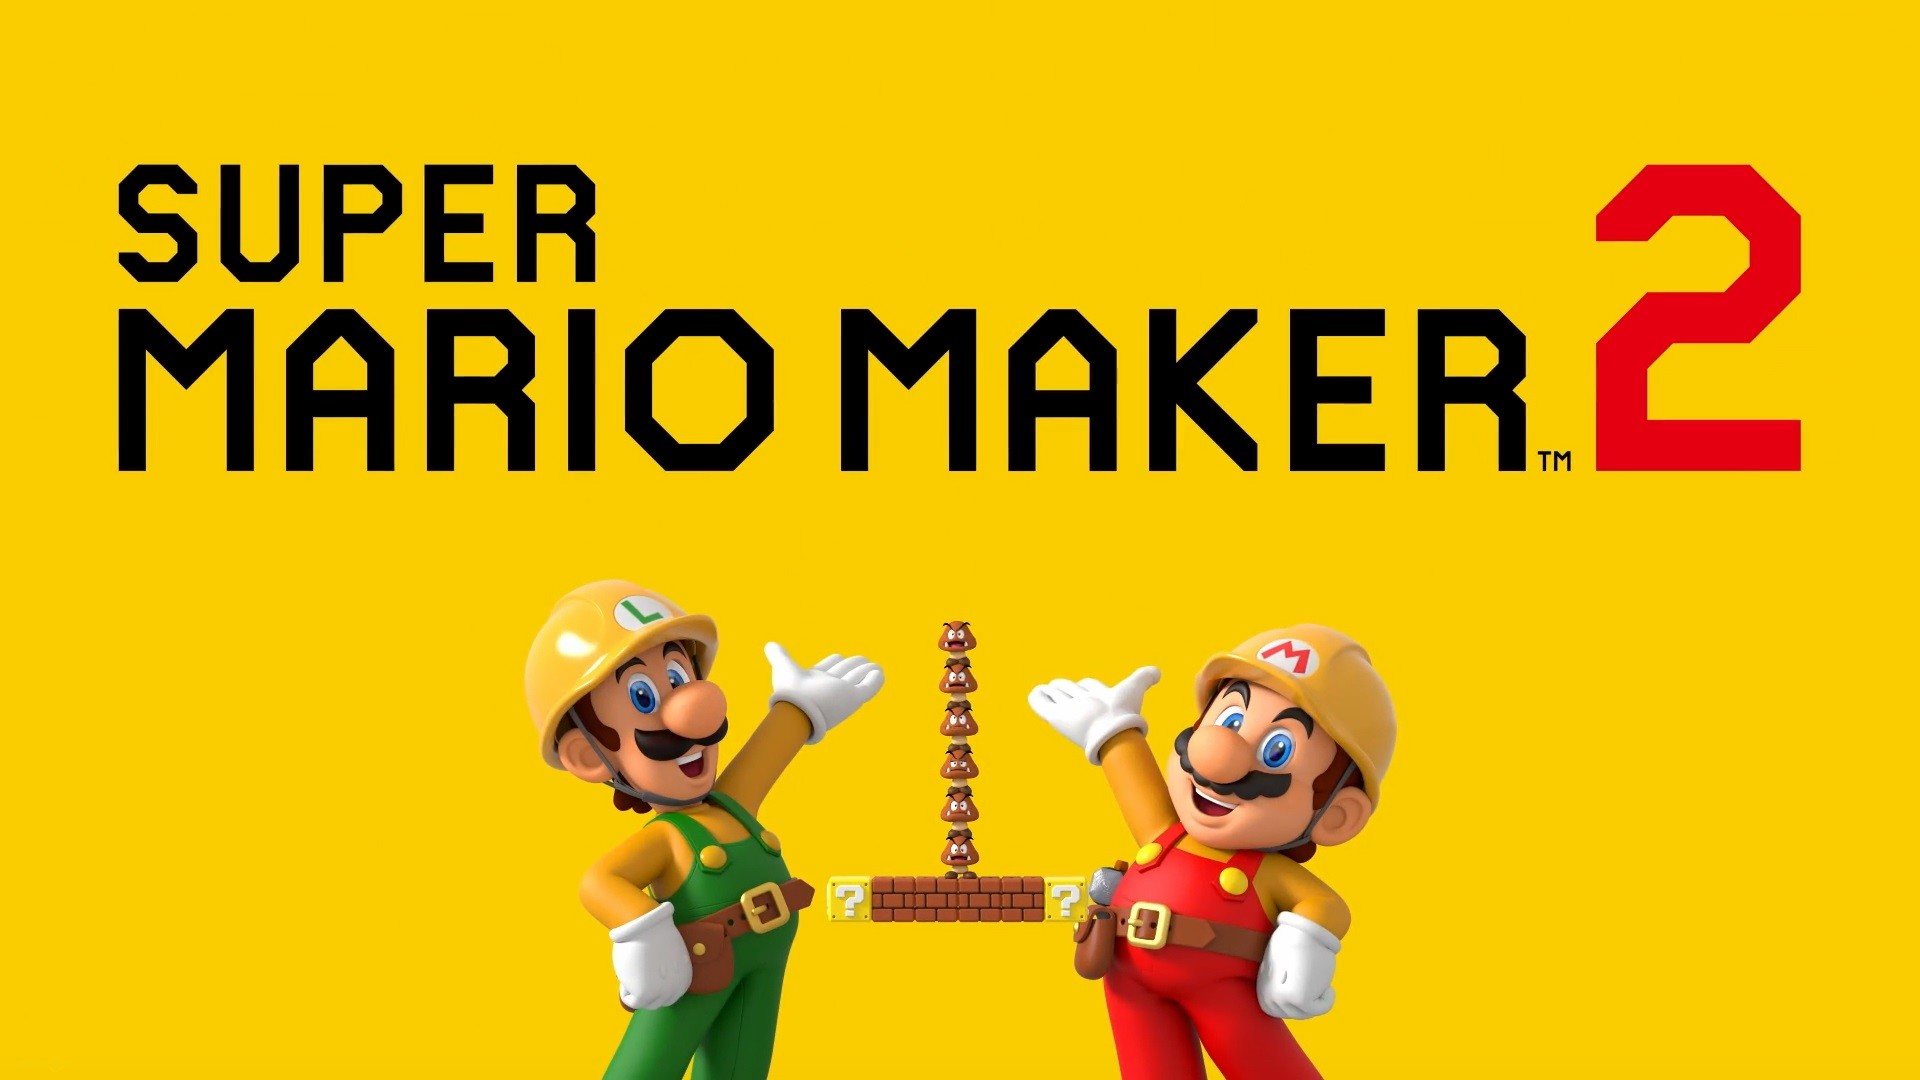 Super Mario Maker 2 Wallpaper 68159 1920x1080px